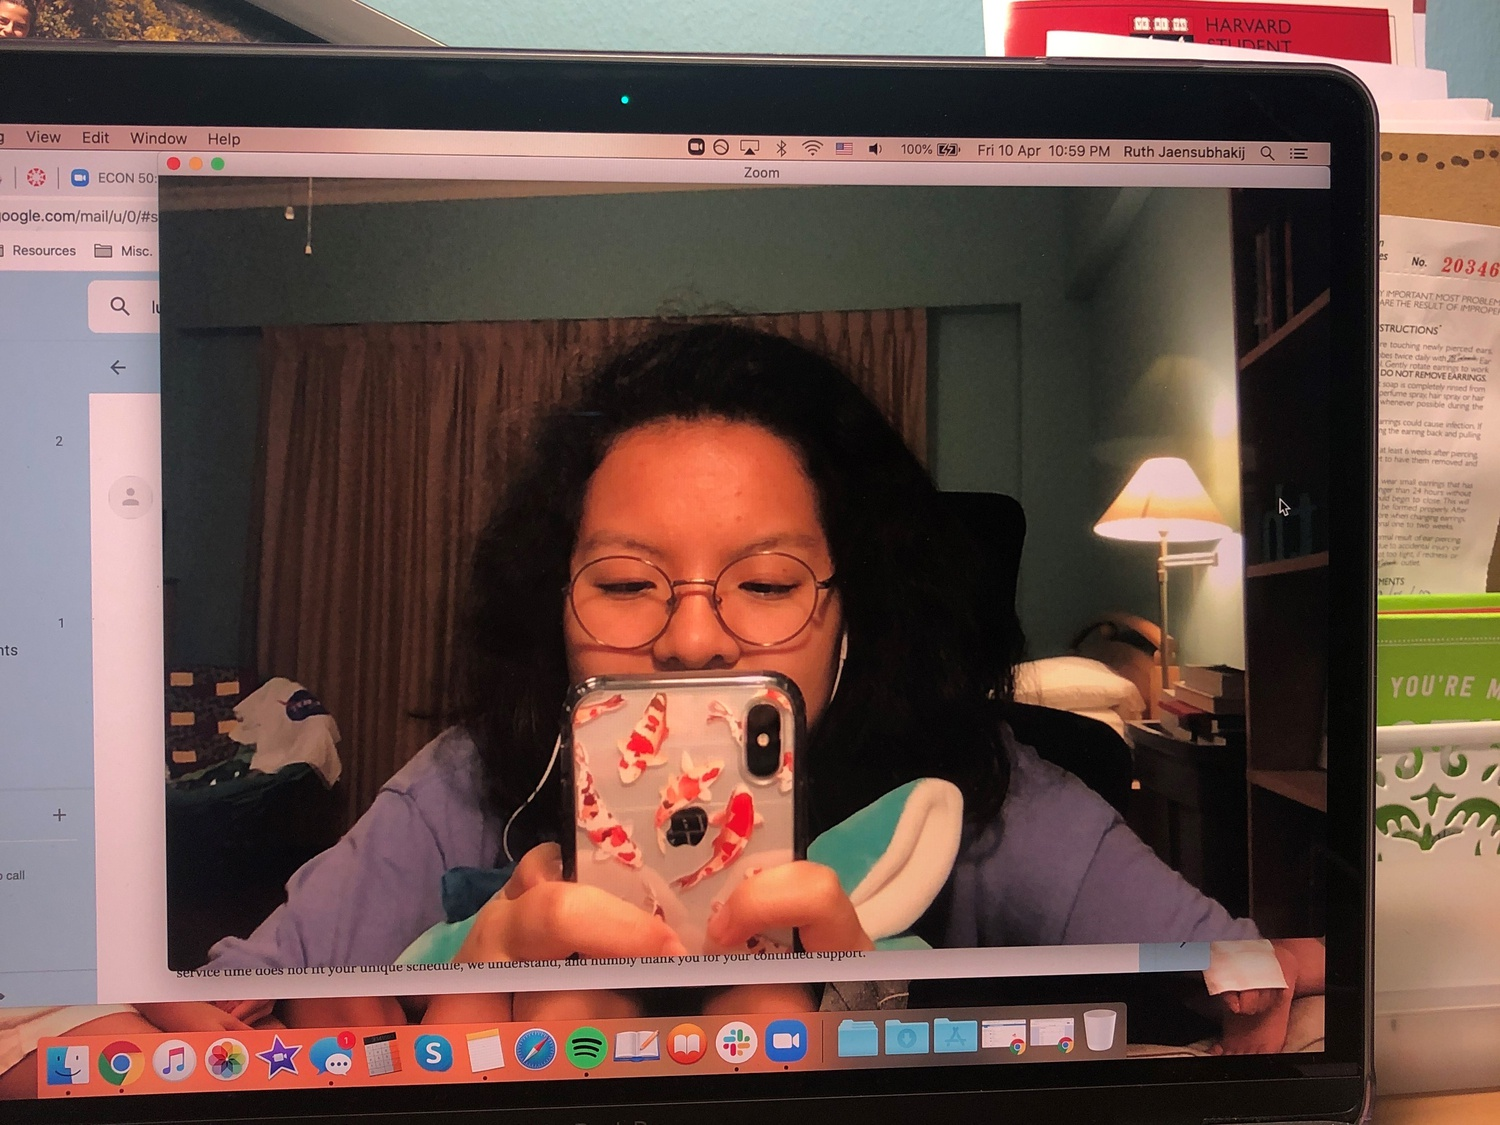 Ruth H. Jaensubhakij '22, whose sleep schedule has taken an erratic turn, attempts to connect to a Zoom class in Cambridge, Mass. from her home in Singapore.